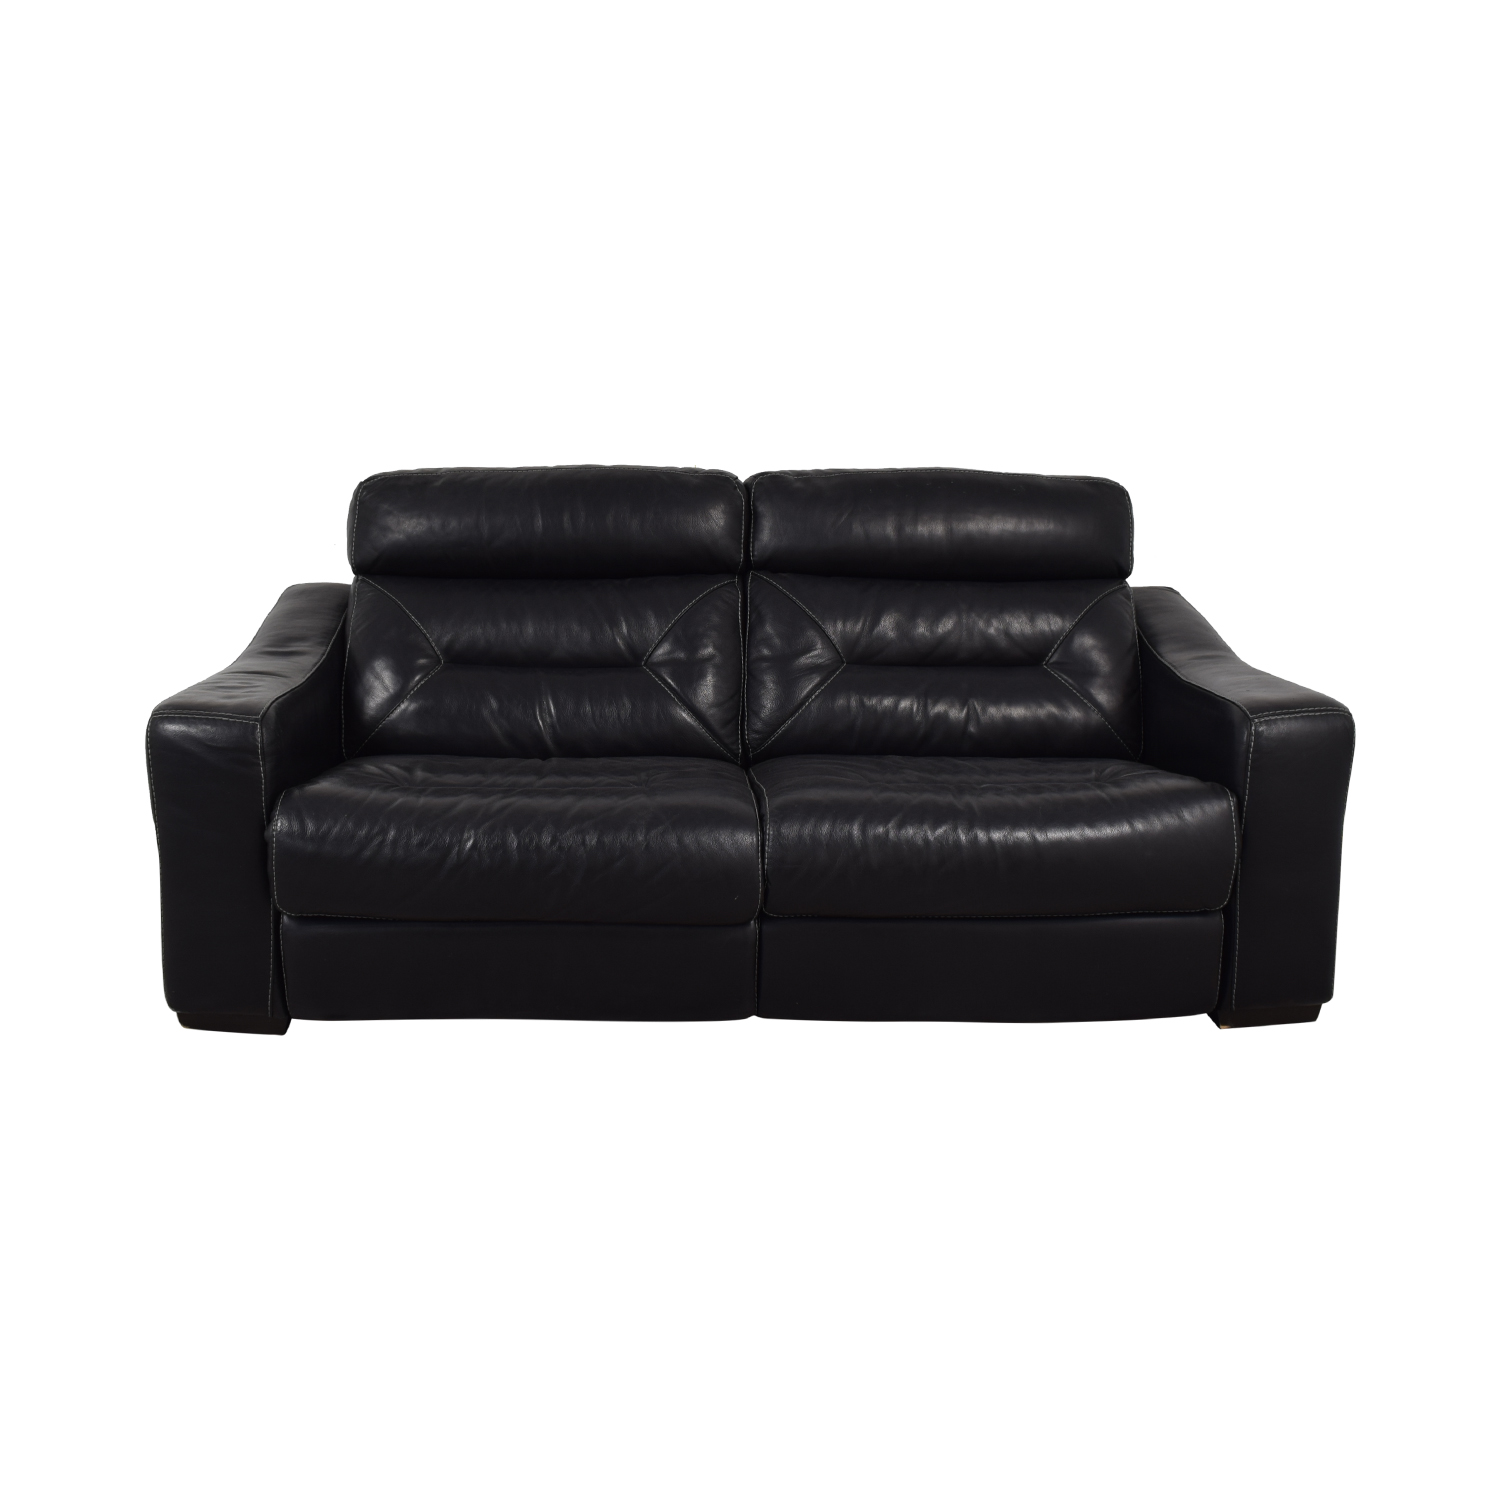 shop Macy's Judson Leather Dual Power Reclining Loveseat Macy's